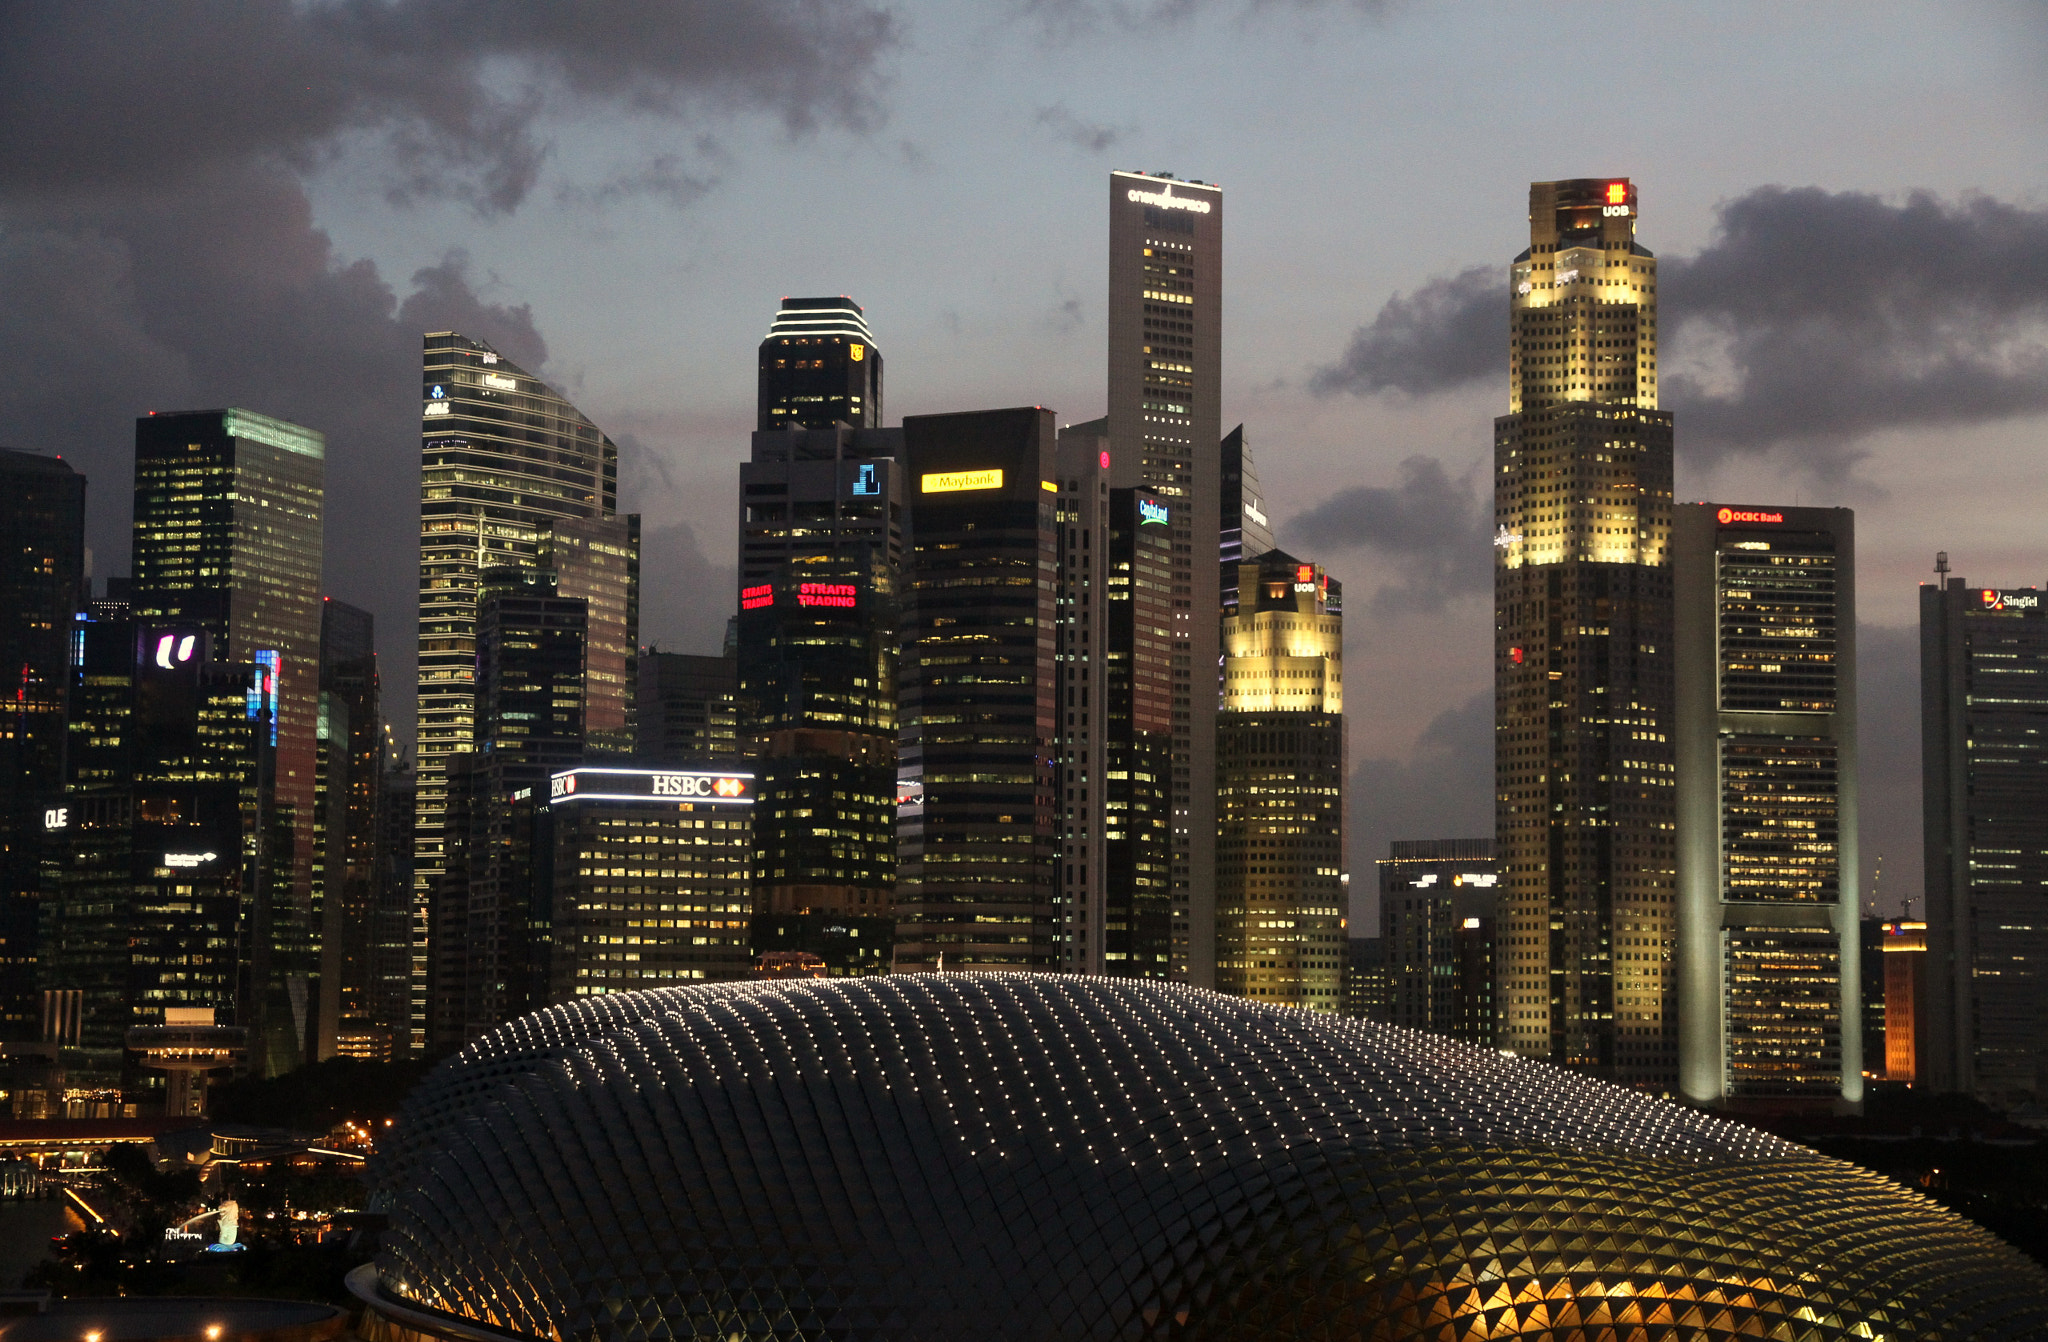 Photograph Raffles place in Singapore by THE TOKYO FOREST on 500px